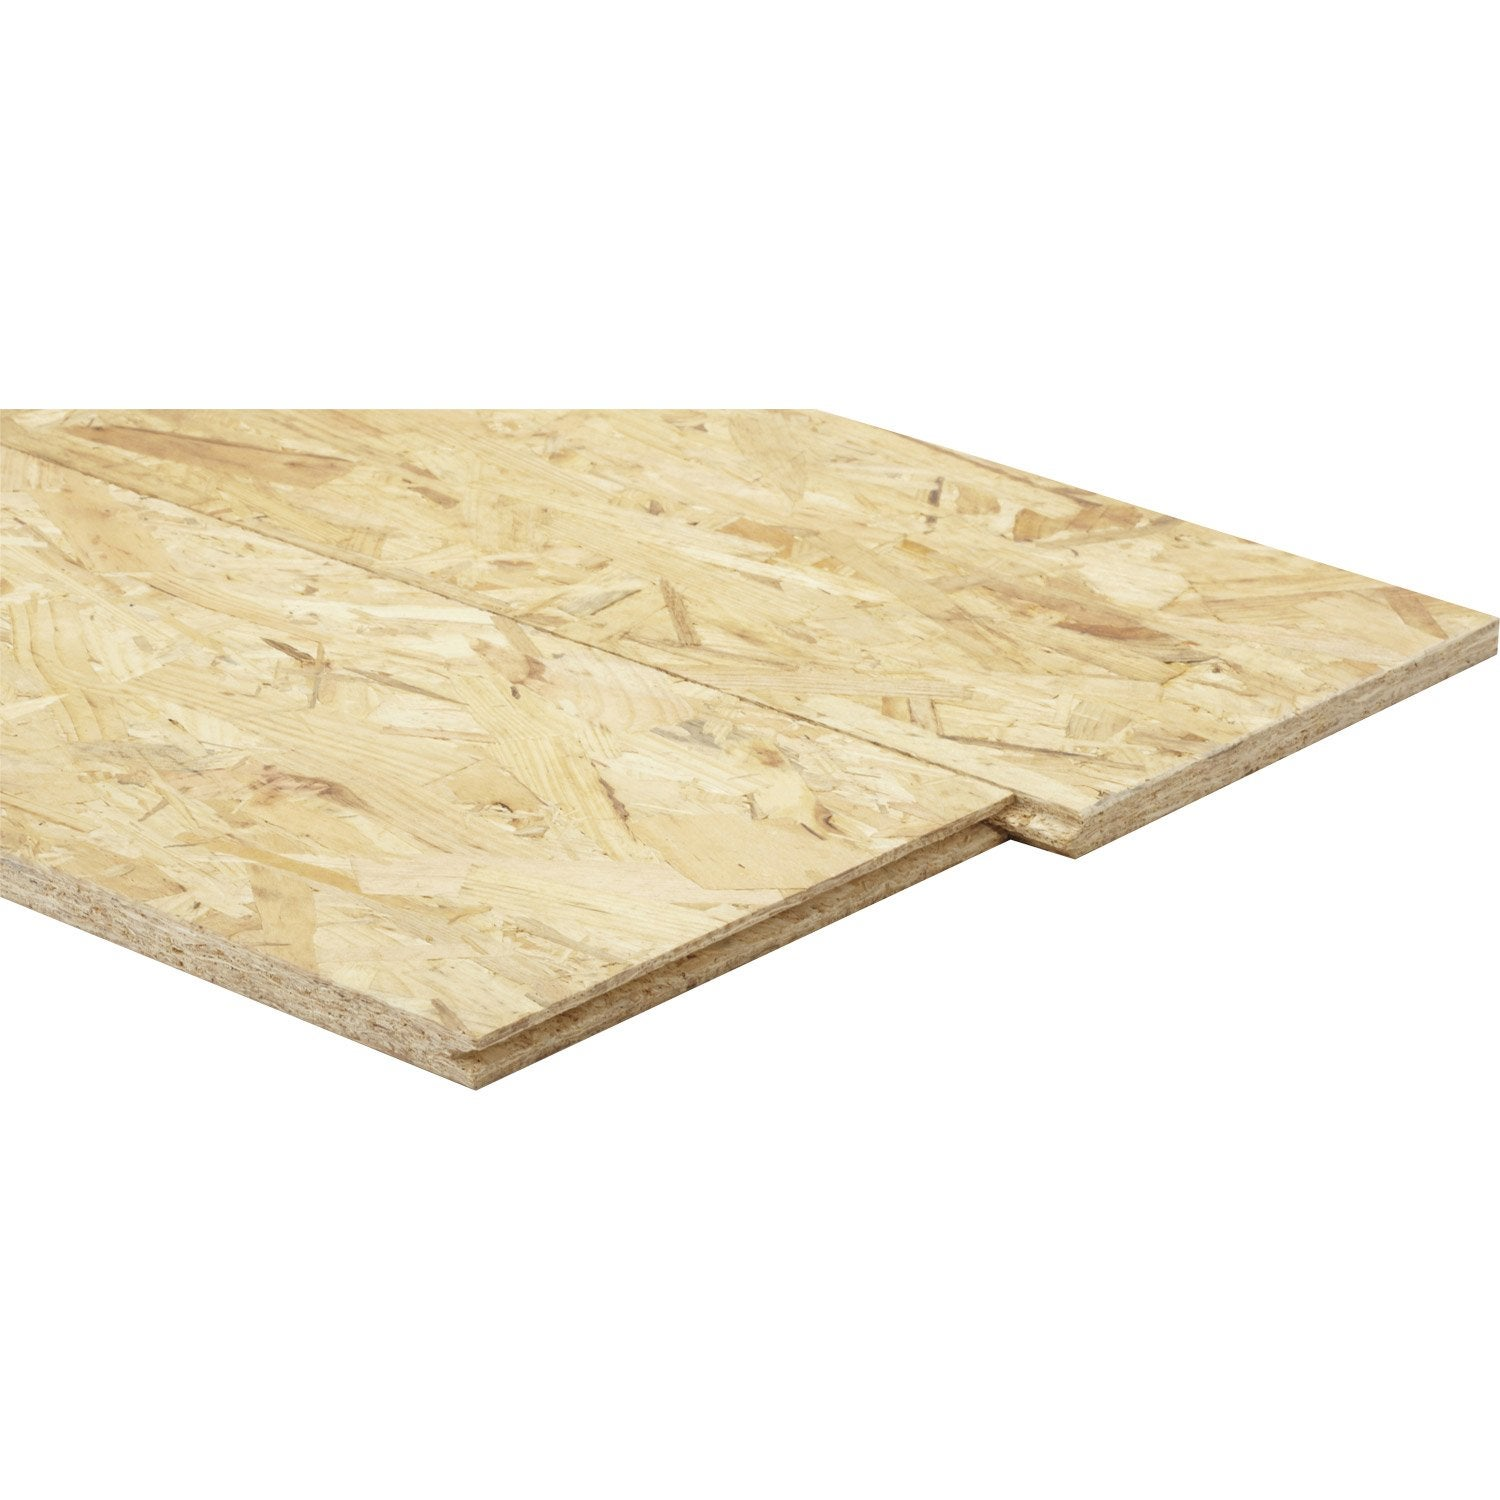 Dalle de plancher osb 3 3 plis pic a naturel mm x - Dalle clipsable leroy merlin ...